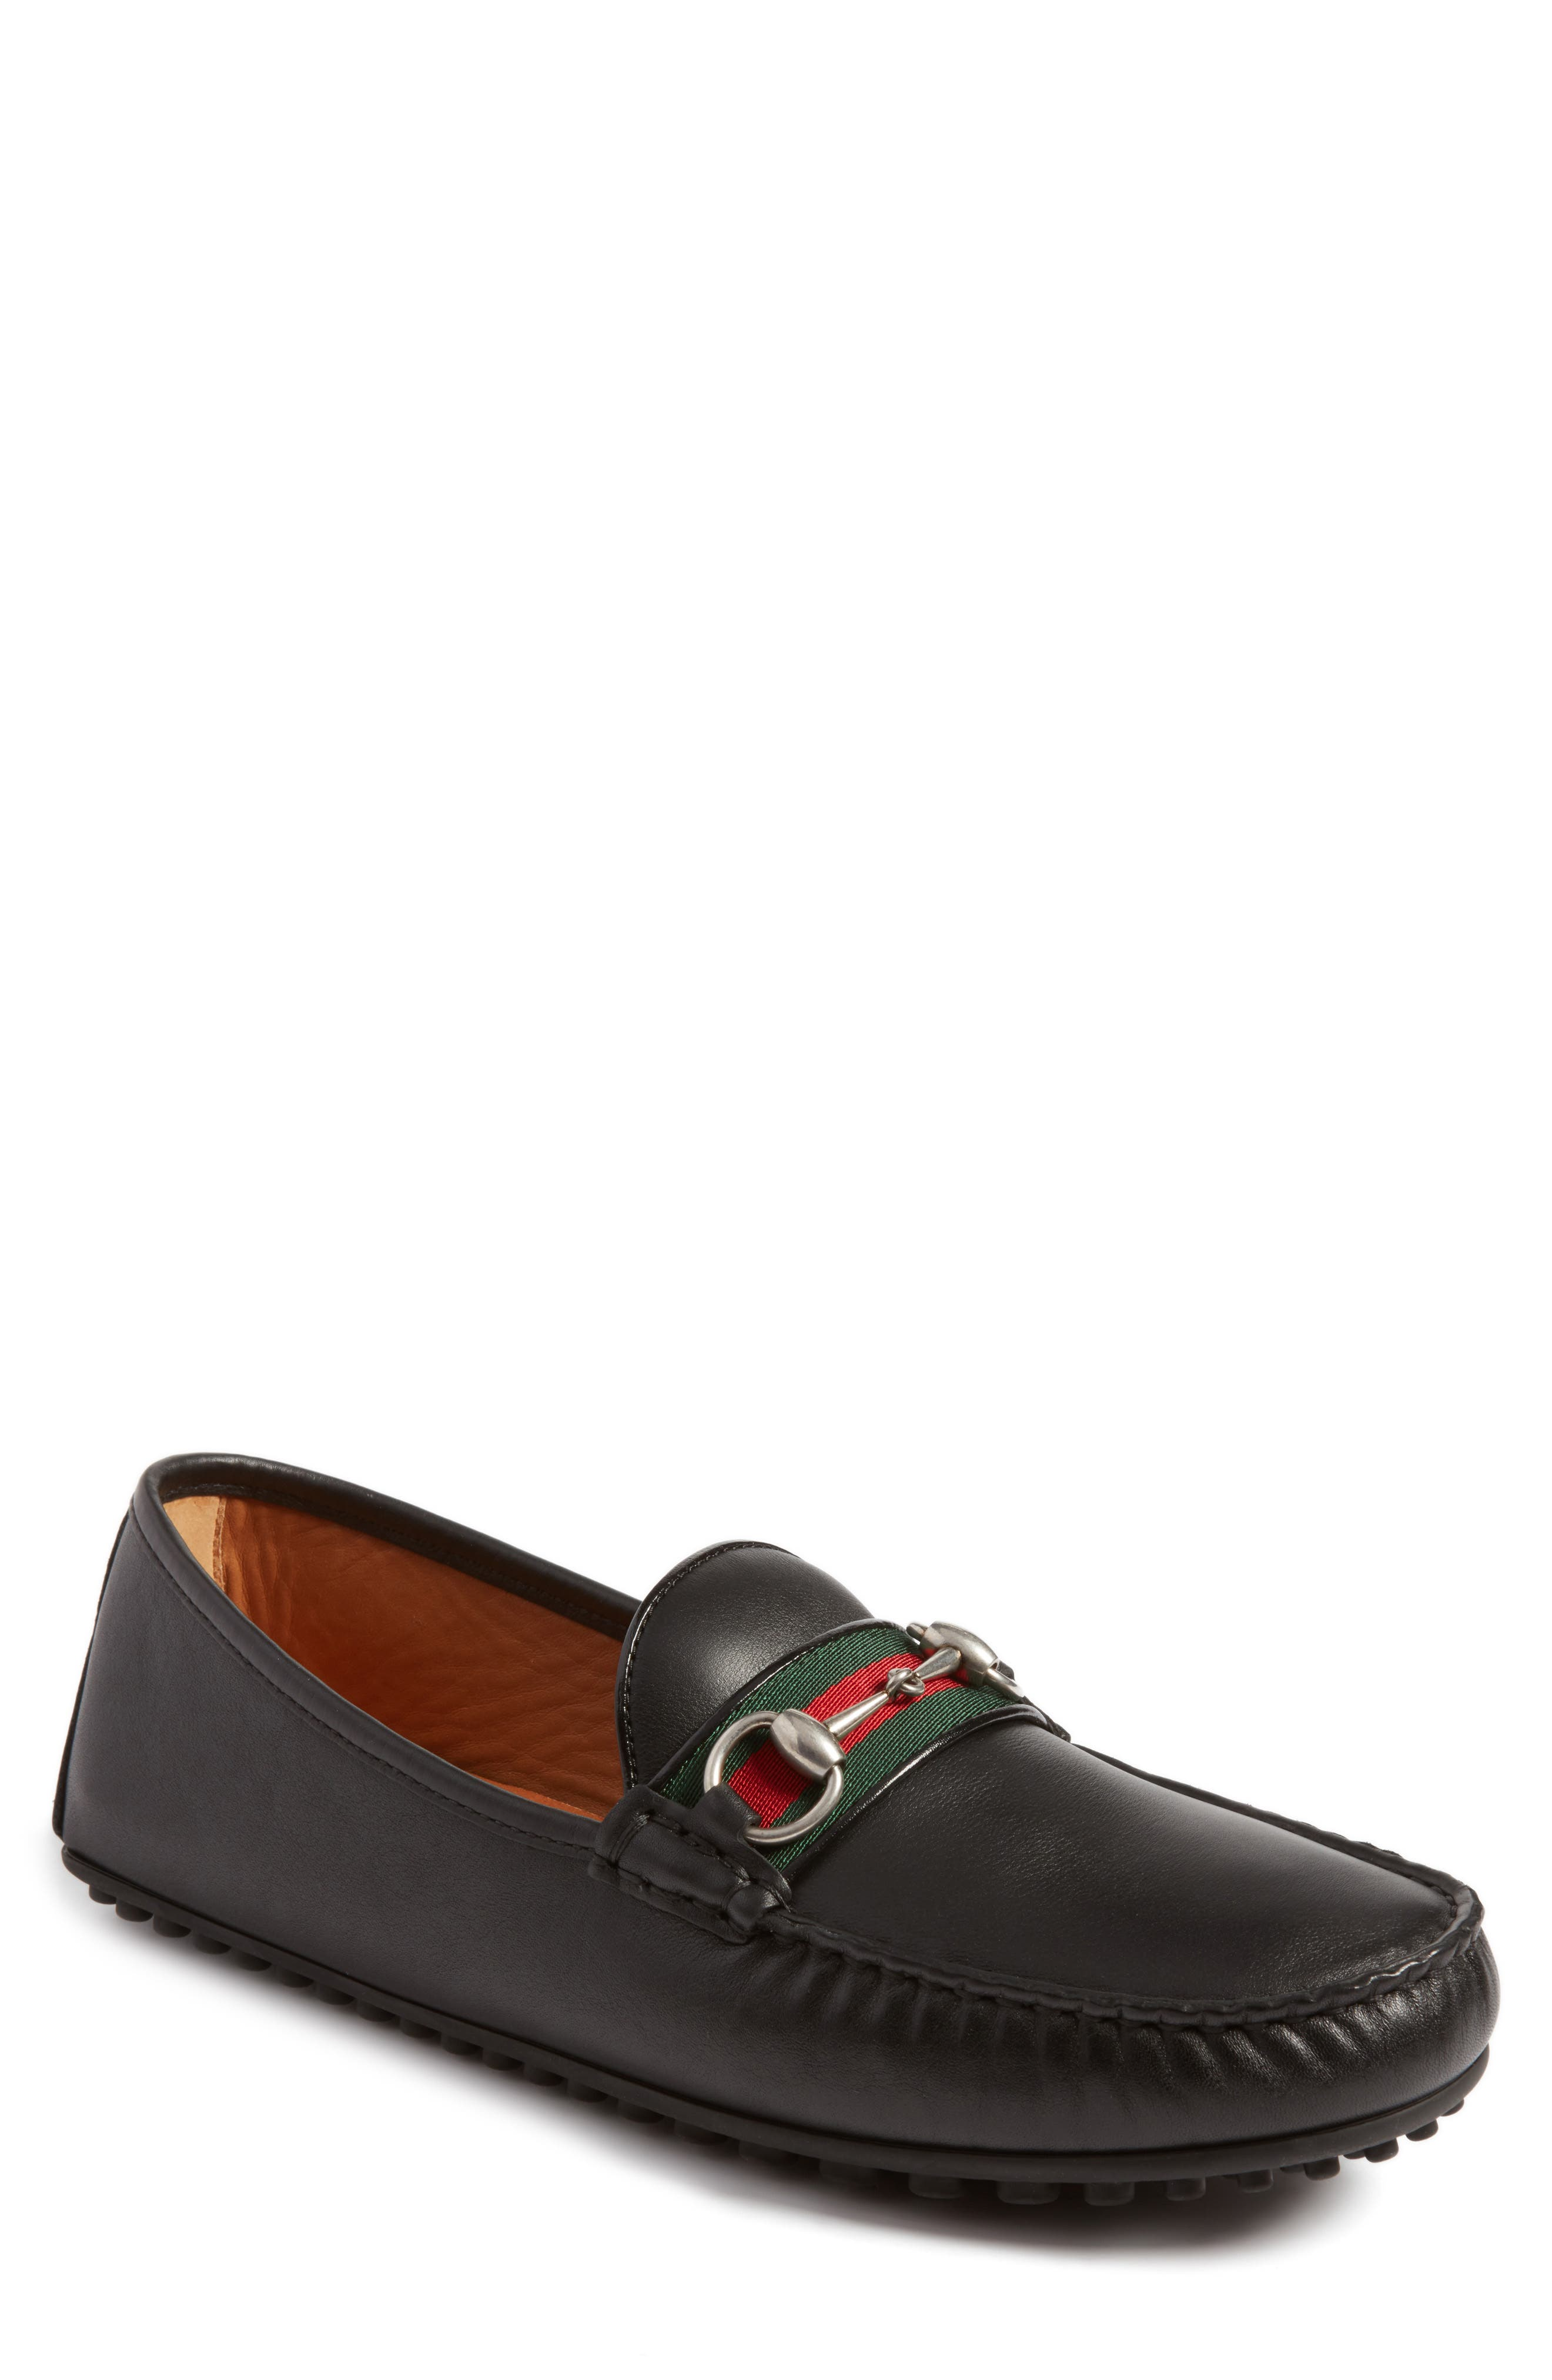 Kanye Bit Loafer,                         Main,                         color, NERO LEATHER